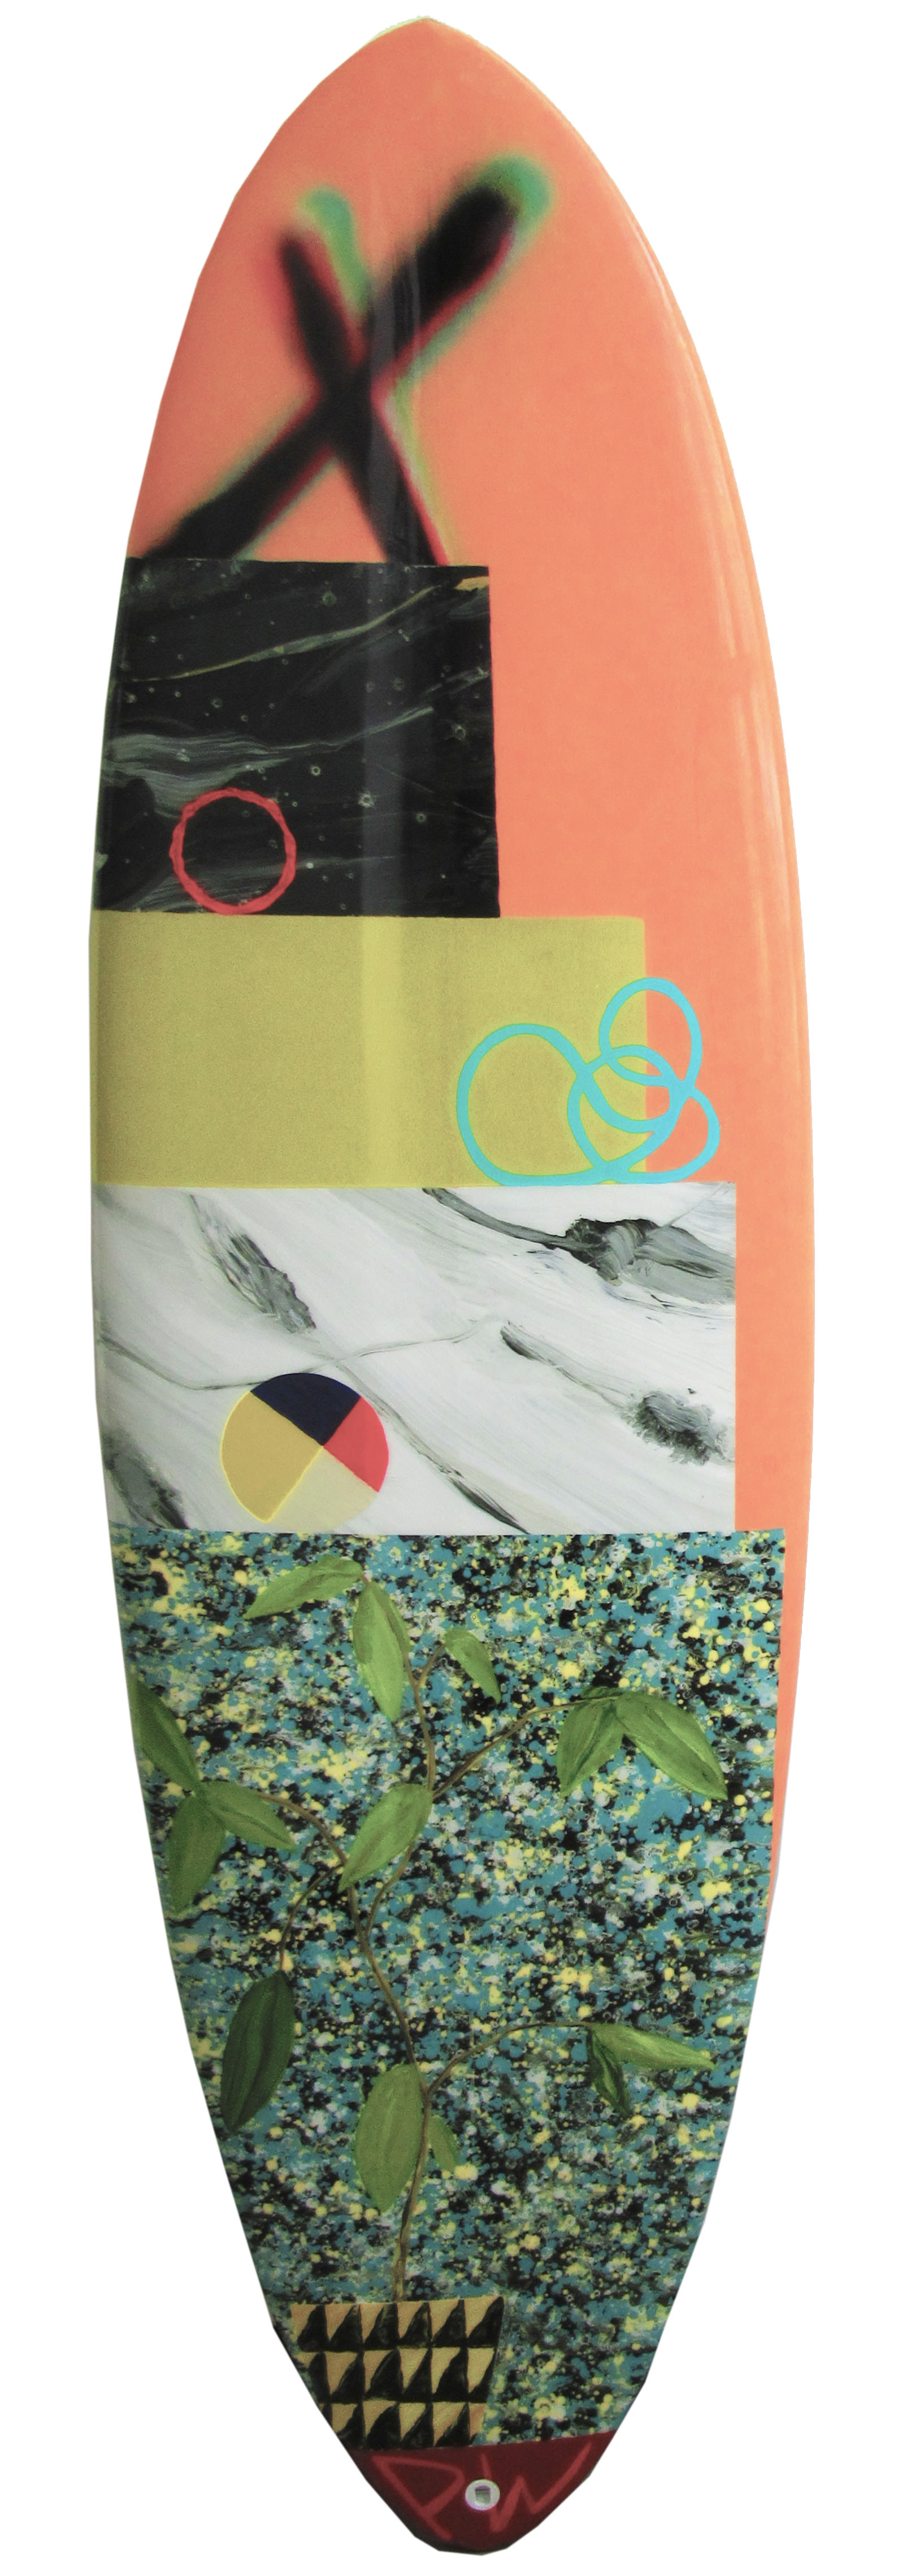 Surfboard design by Paul Wackers benefiting Waves for Water and Changing Tides Foundation